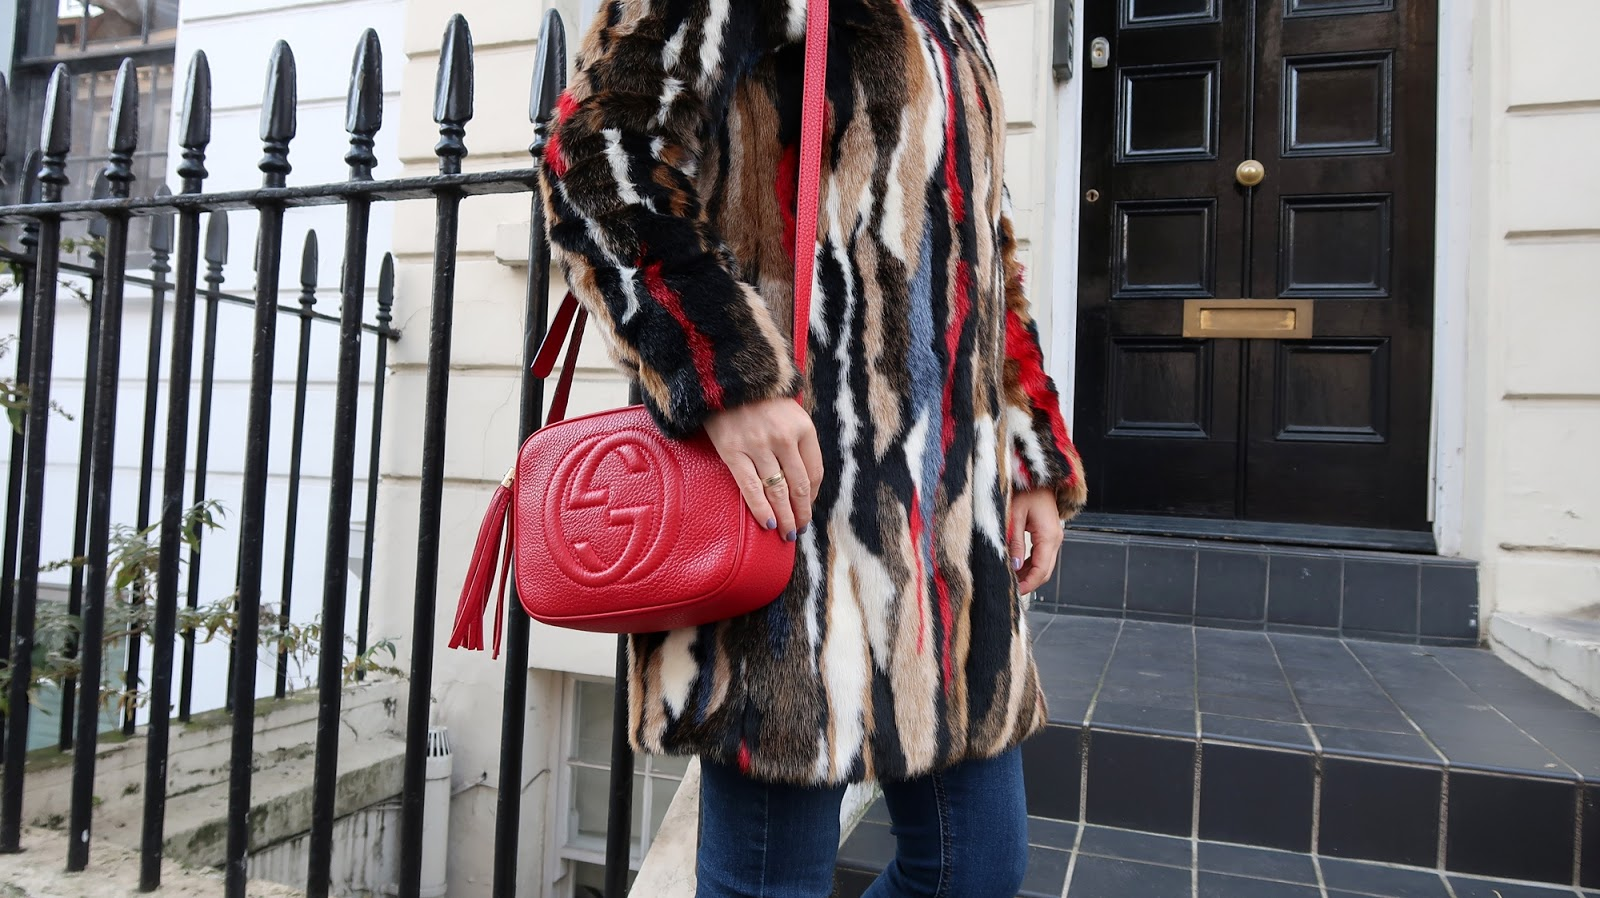 zara-faux-fur-coat-outfit-streetstyle-gucci-bag